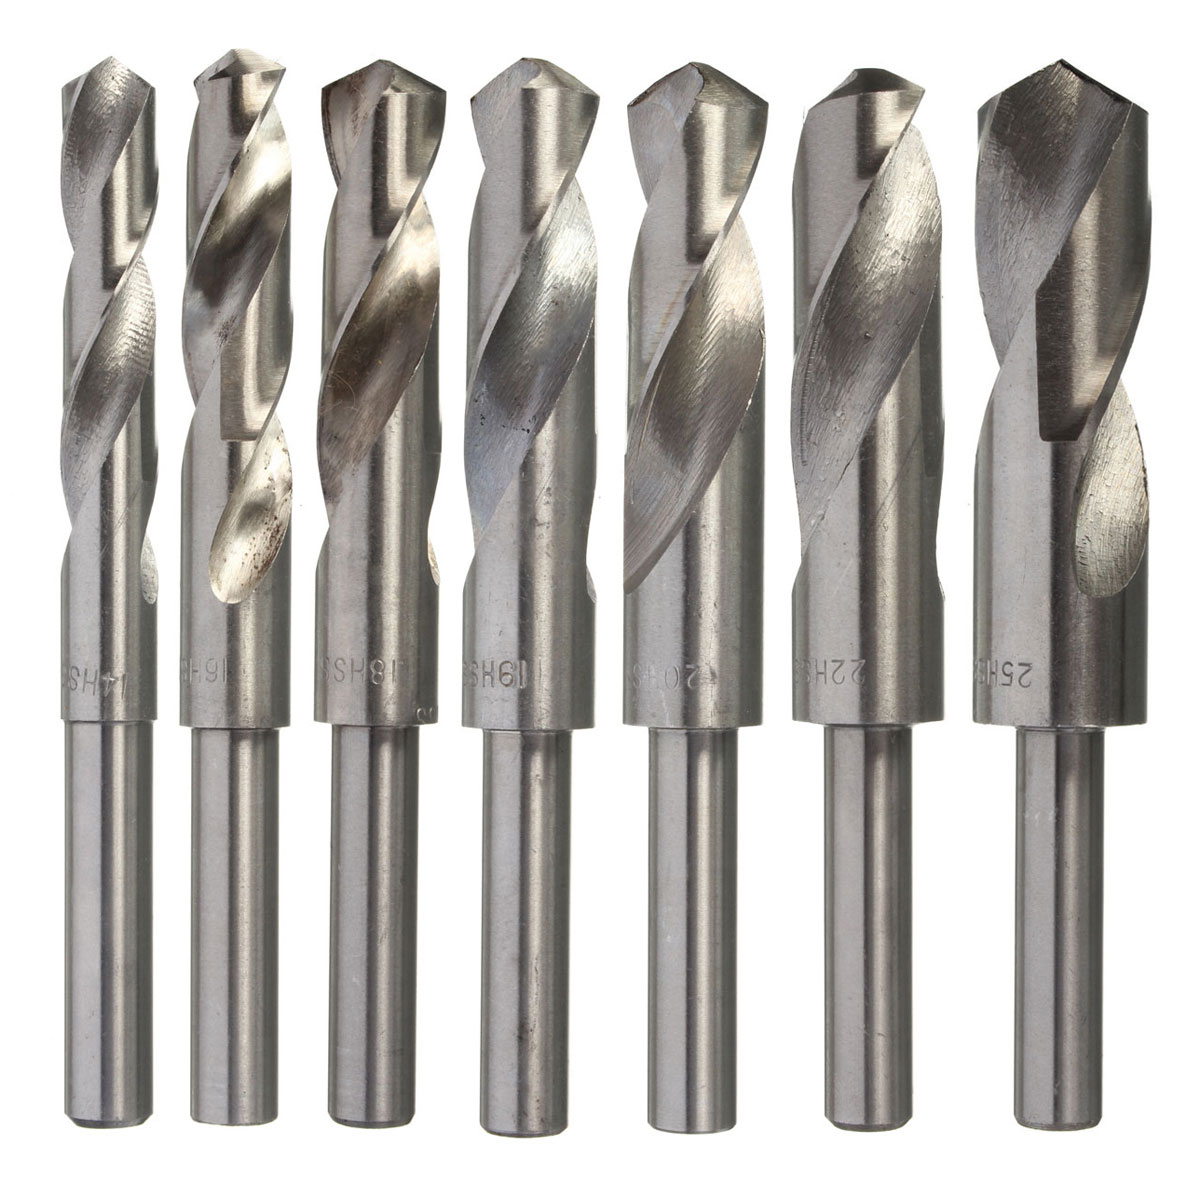 1Pcs 14/16/18/19/20/22/25mm Carbon Steel HSS Blacksmiths Drill Bit 1/2